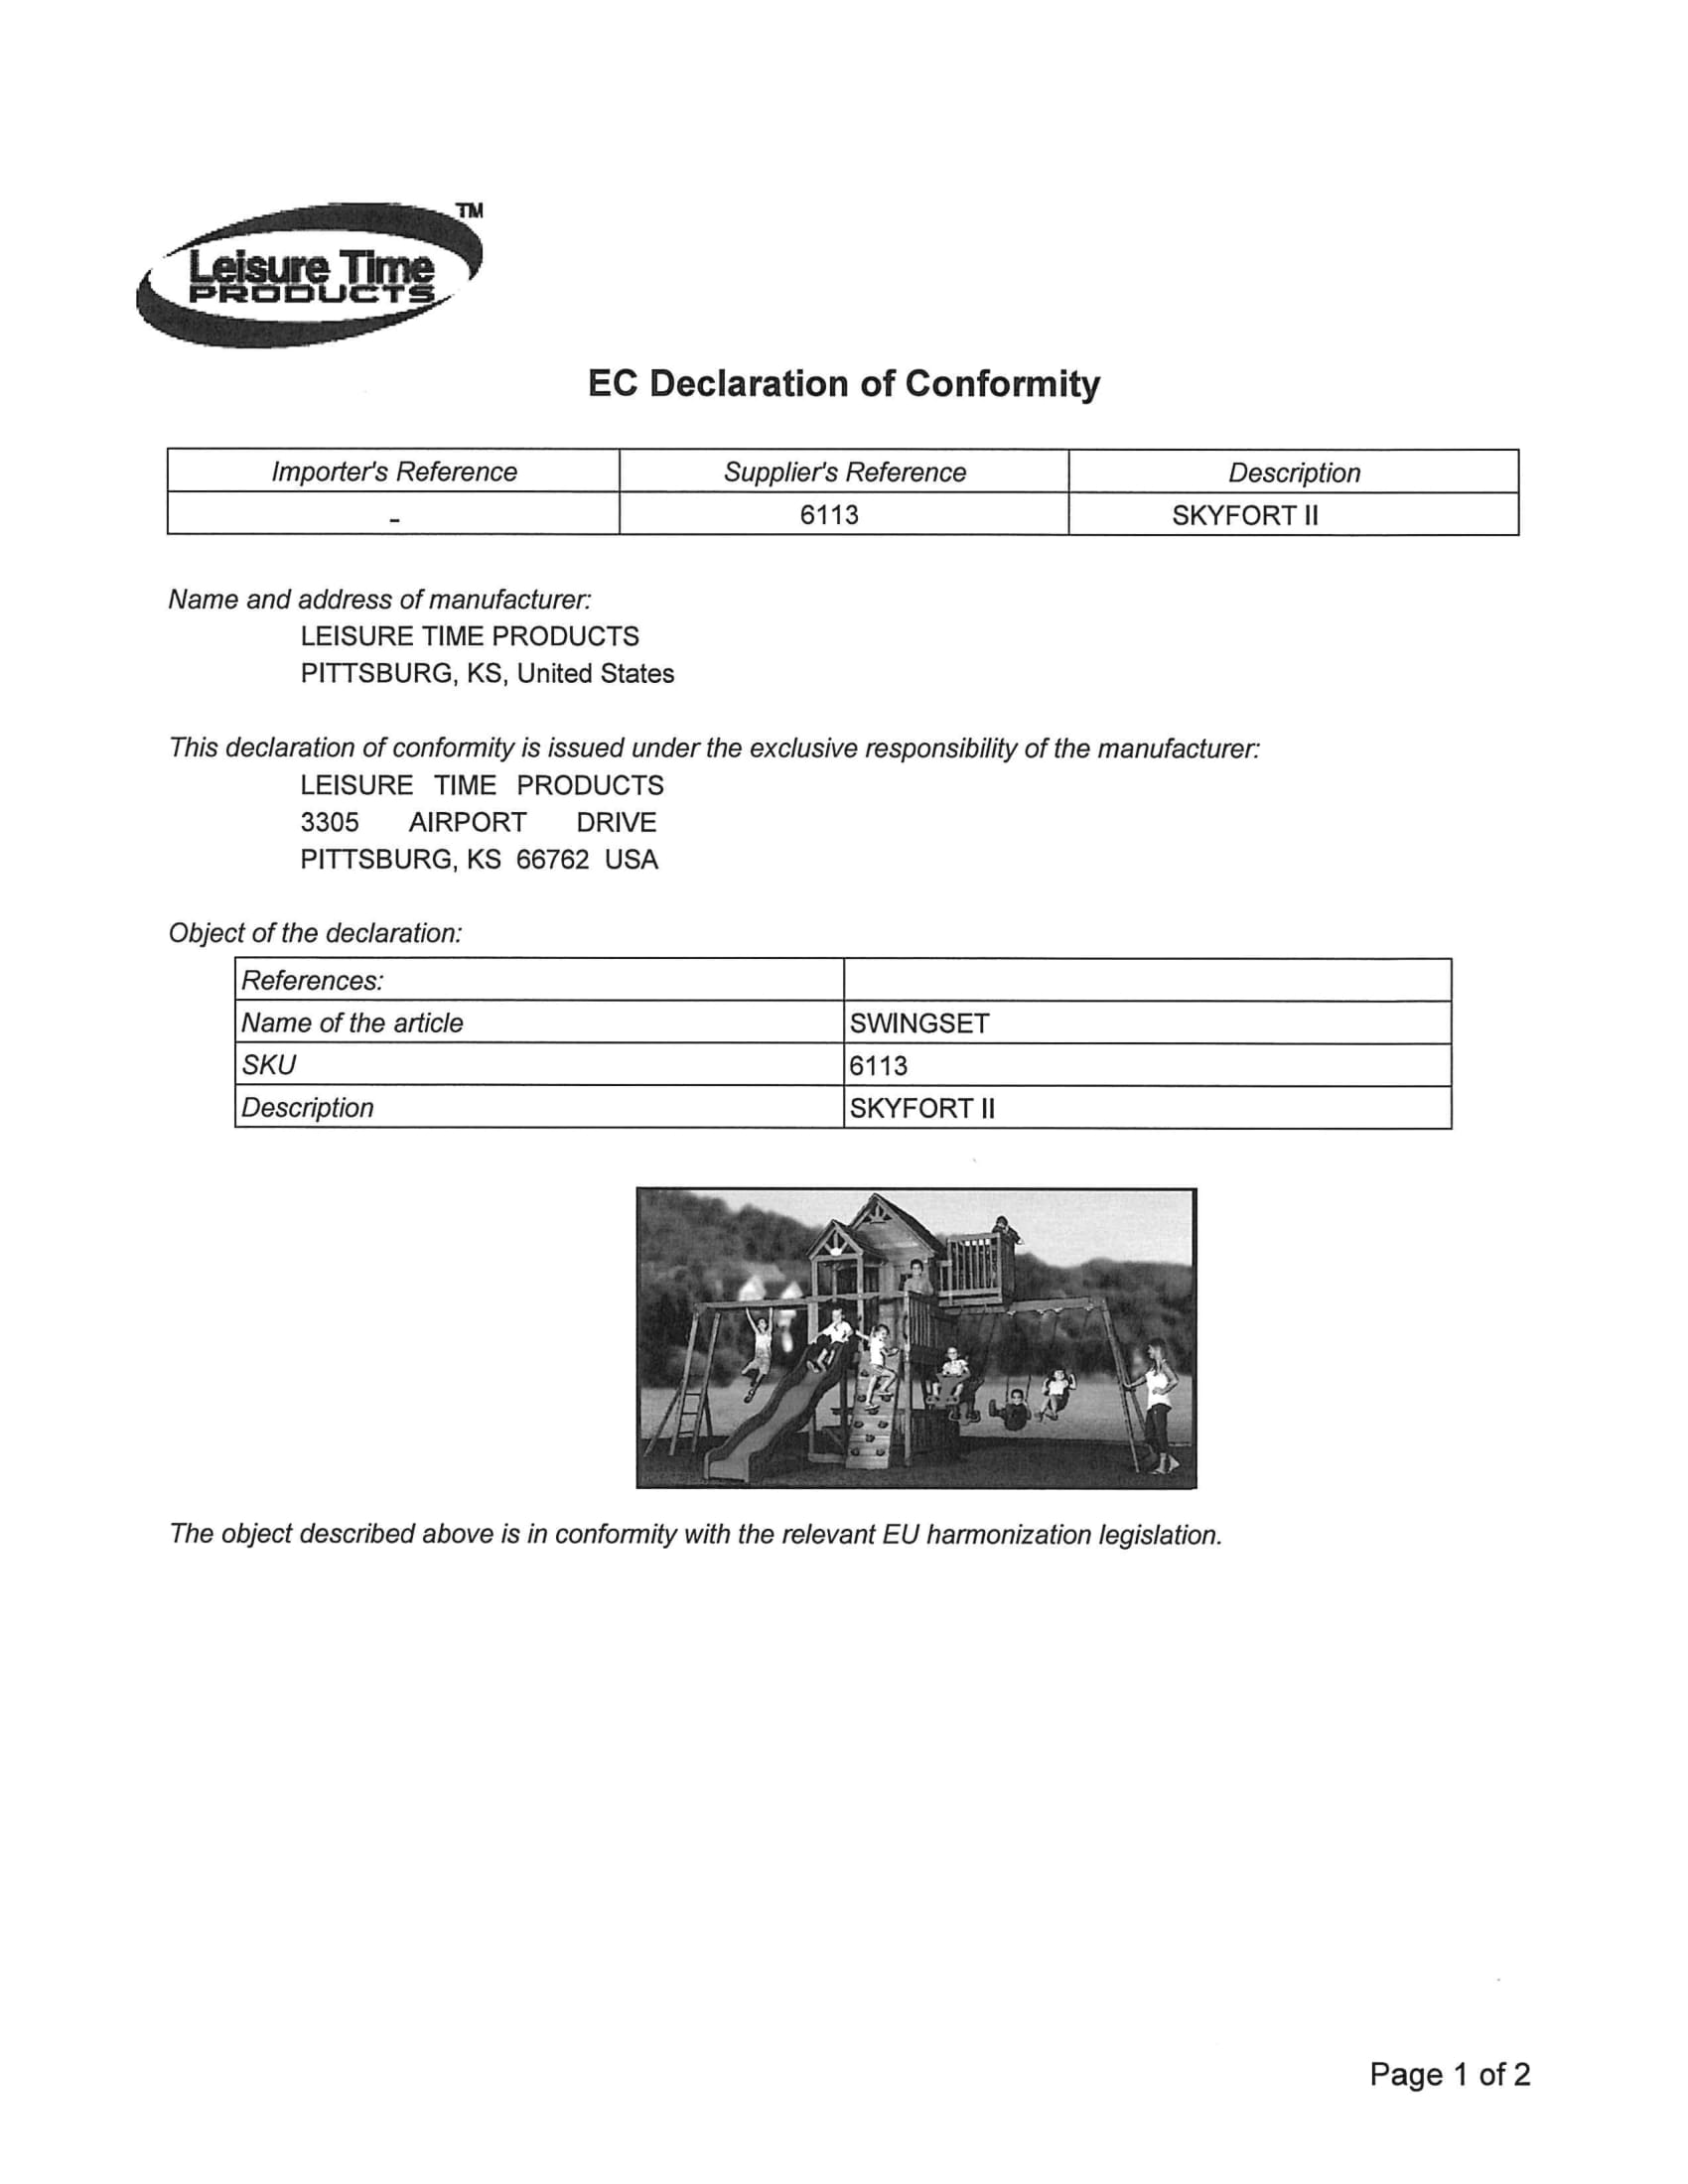 Need professional help for Declaration of Conformity - Sell on